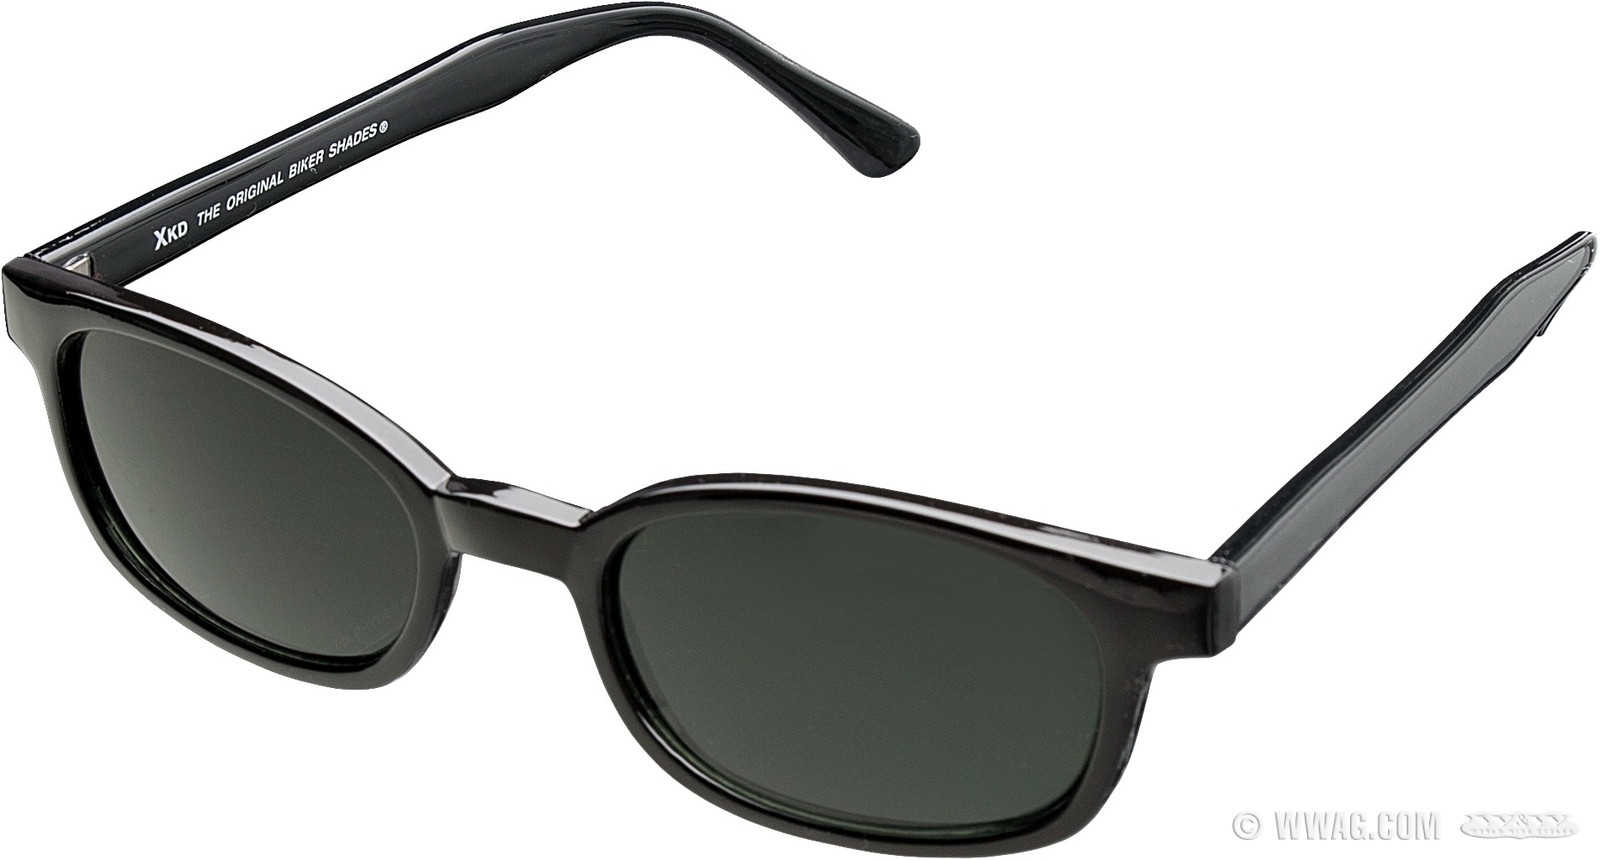 6c8e578d8544 W&W Cycles - Apparel and Helmets > X-KD's Sunglasses